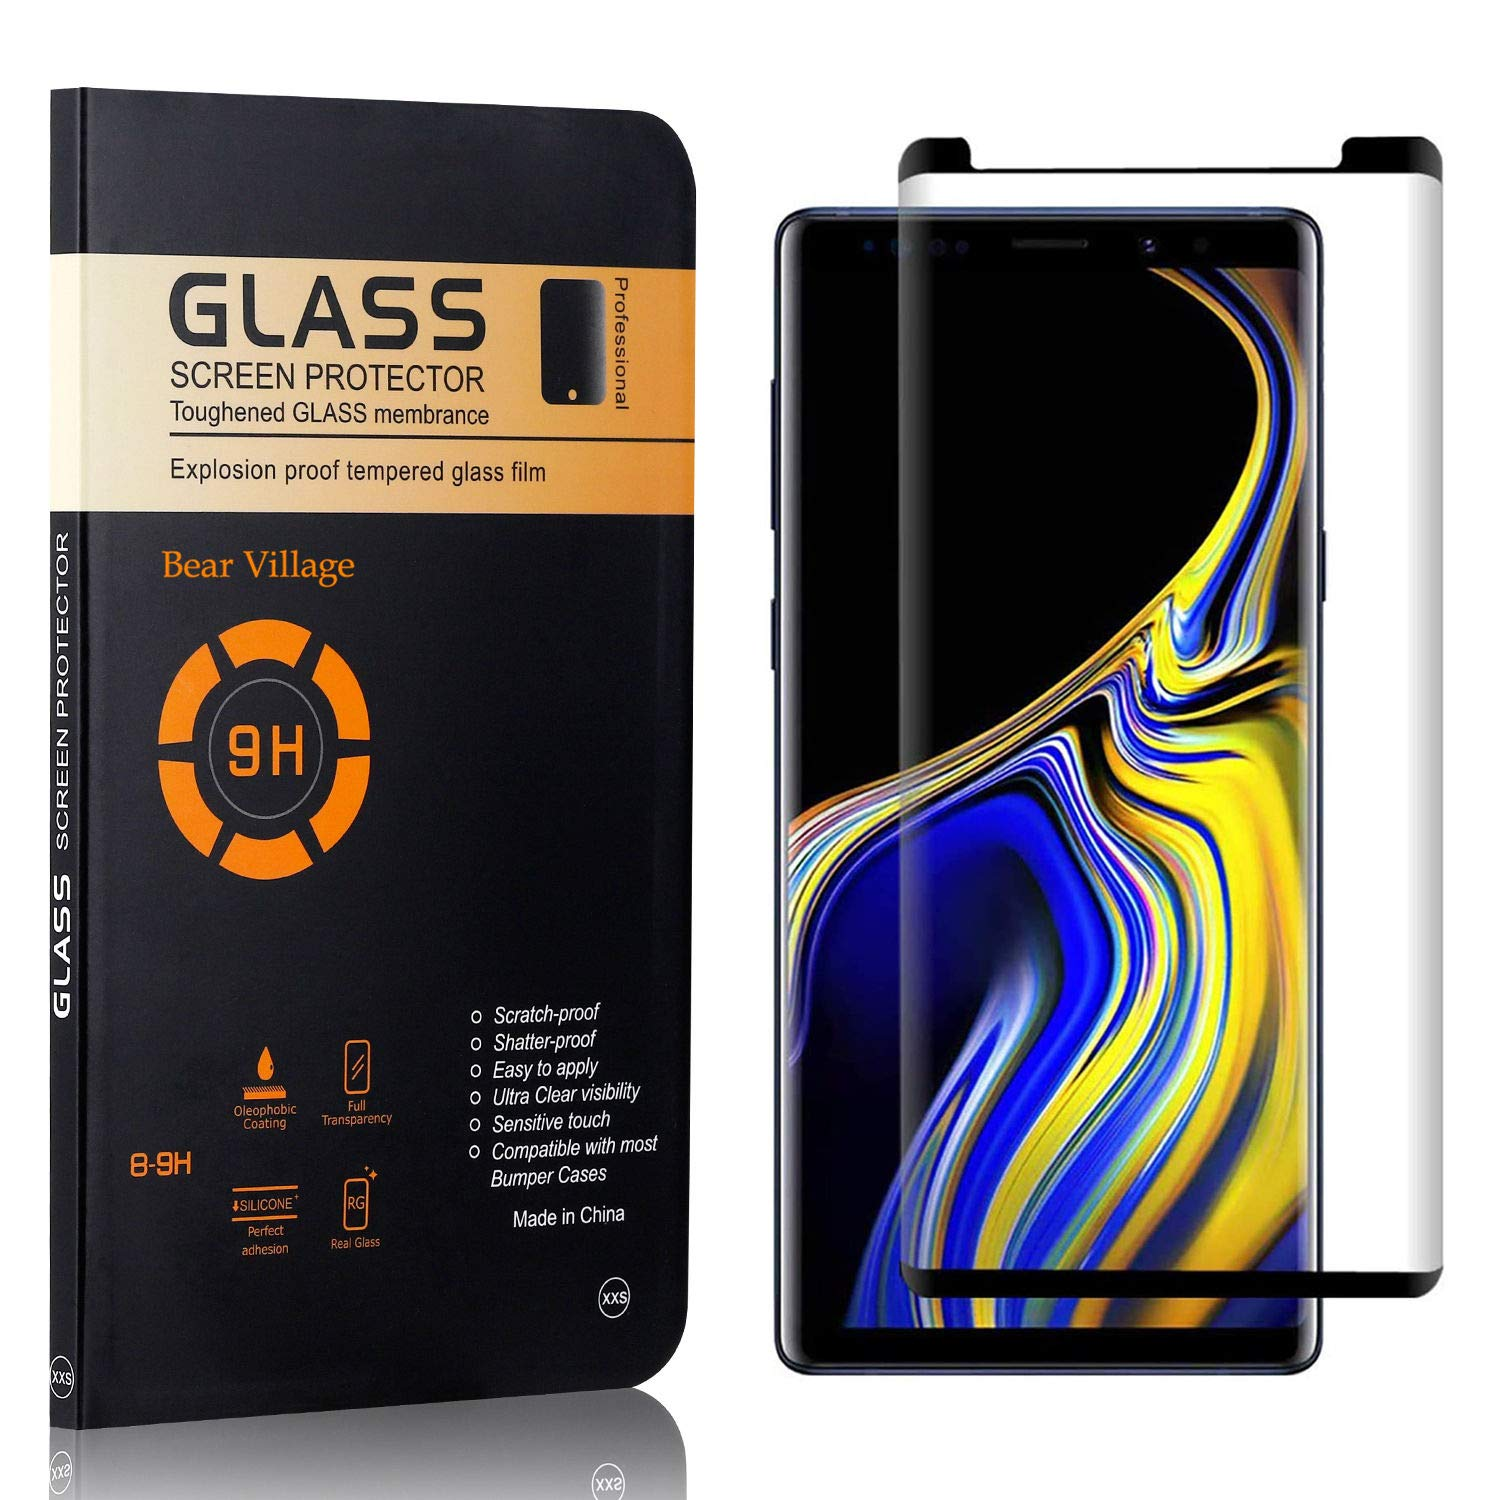 Bear Village HD Tempered Glass Screen Protector Bubble Free Screen Protector for Galaxy Note 9 Anti Scratch Screen Protector Film for Samsung Galaxy Note 9 4 Pack